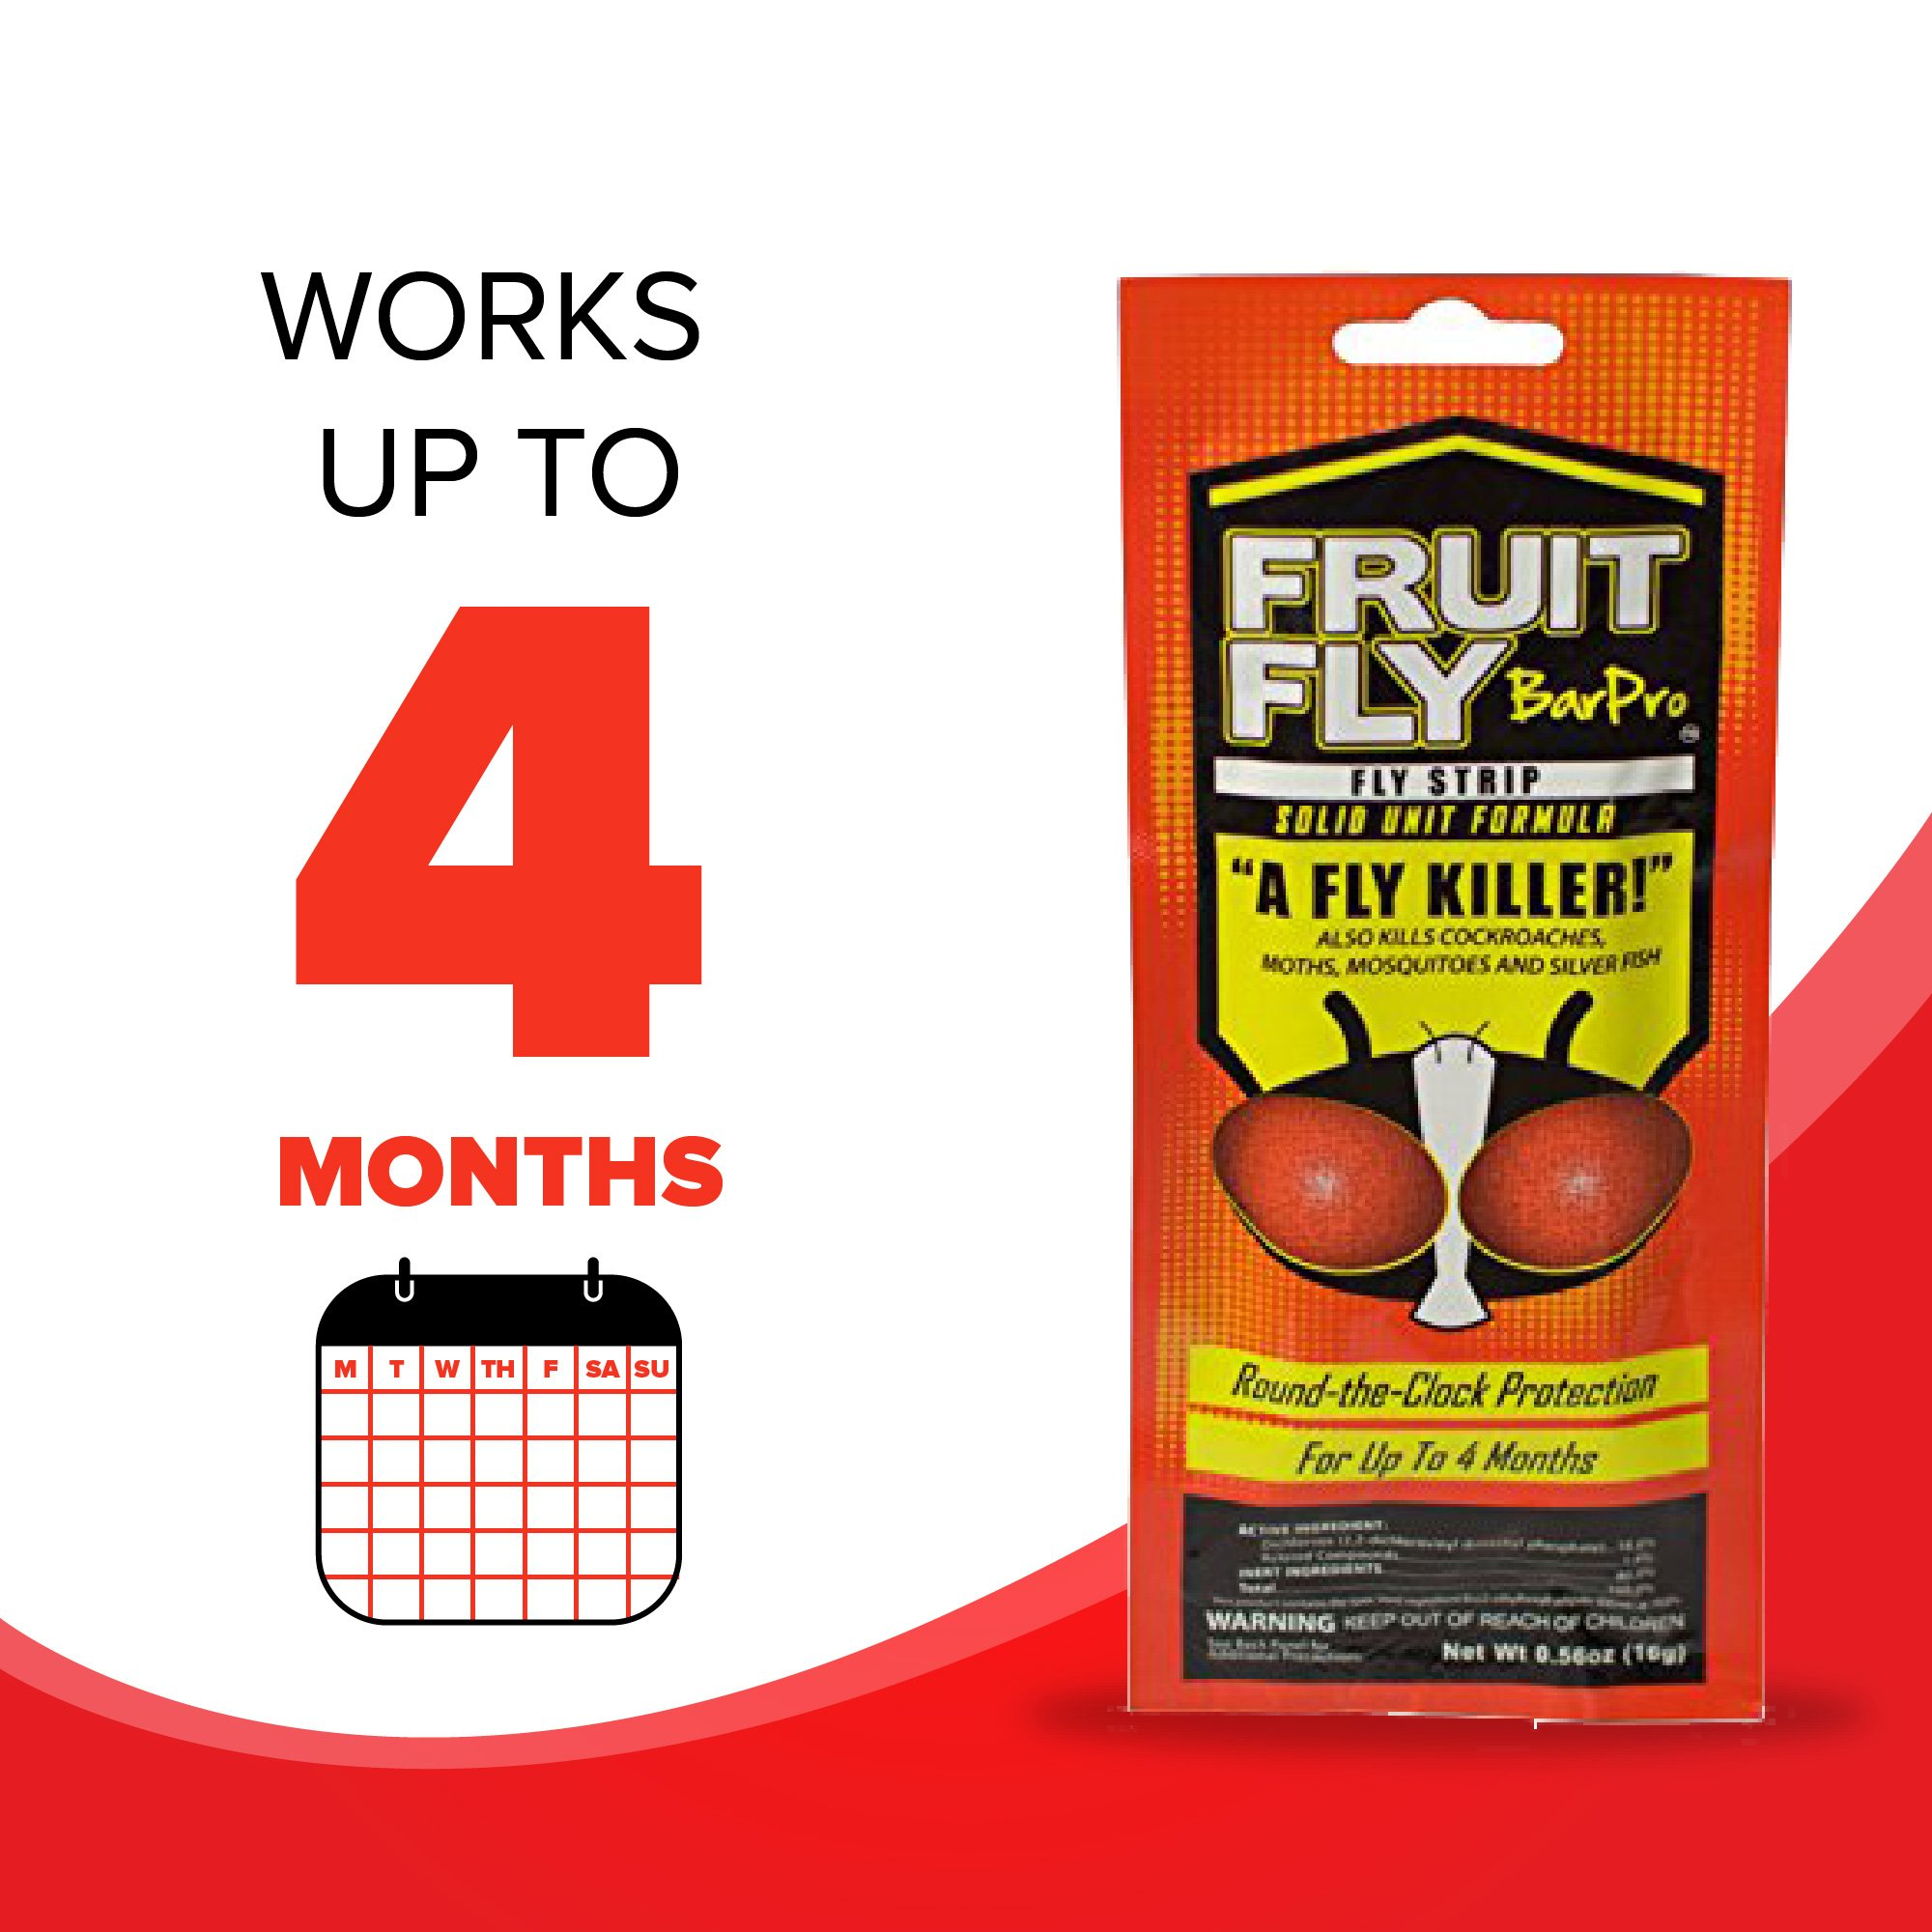 Fruit Fly BarPro Fly Strip – 4 Month Protection Against Flies, Cockroaches, Mosquitos & Other Pests – Portable for Indoor & Outdoor Use (5 Strips, Food Service Pack) by Fruit Fly BarPro (Image #6)